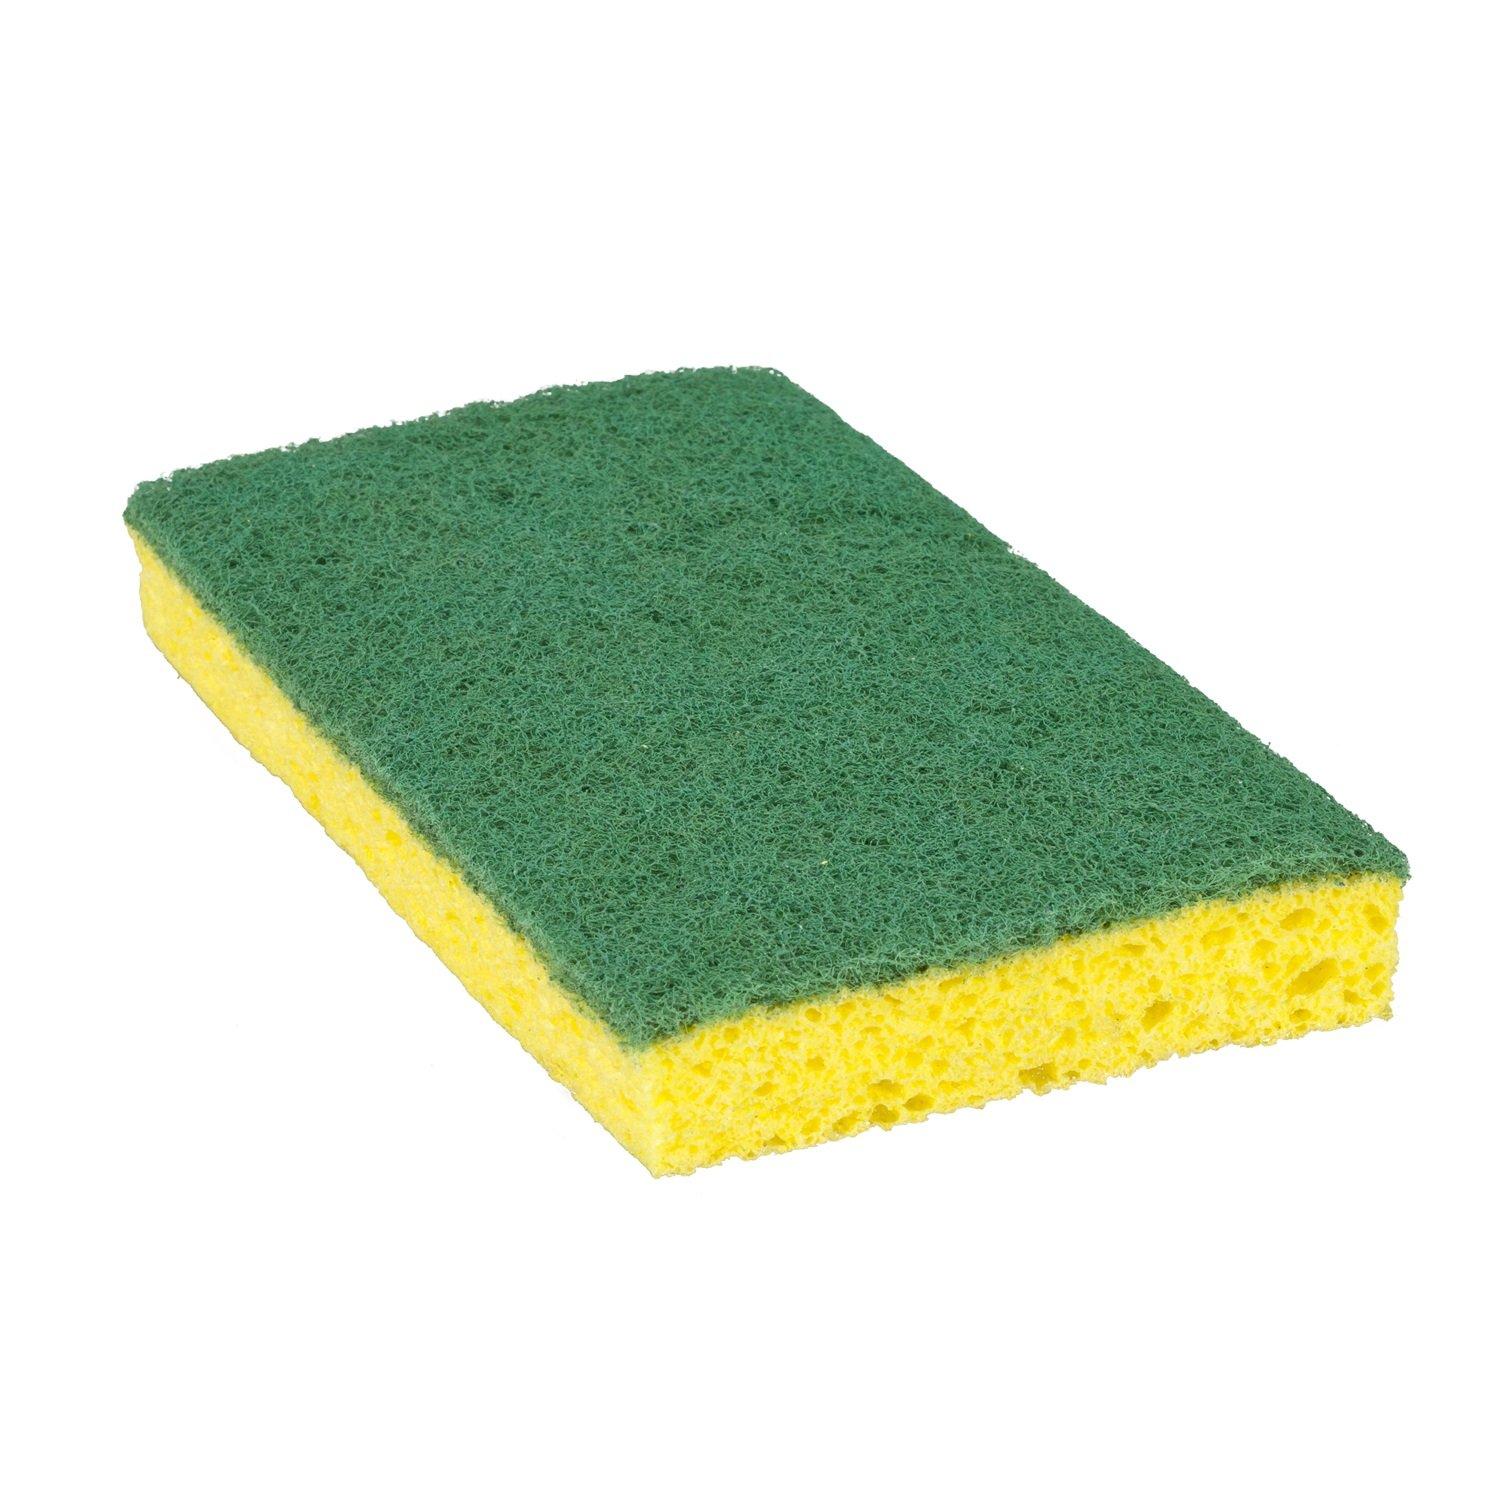 Scotch-Brite Medium Duty Scrub Sponge 74CC, 6.1'' x 3.6'' x 0.7'' (6 Packs of 10) by Scotch-Brite